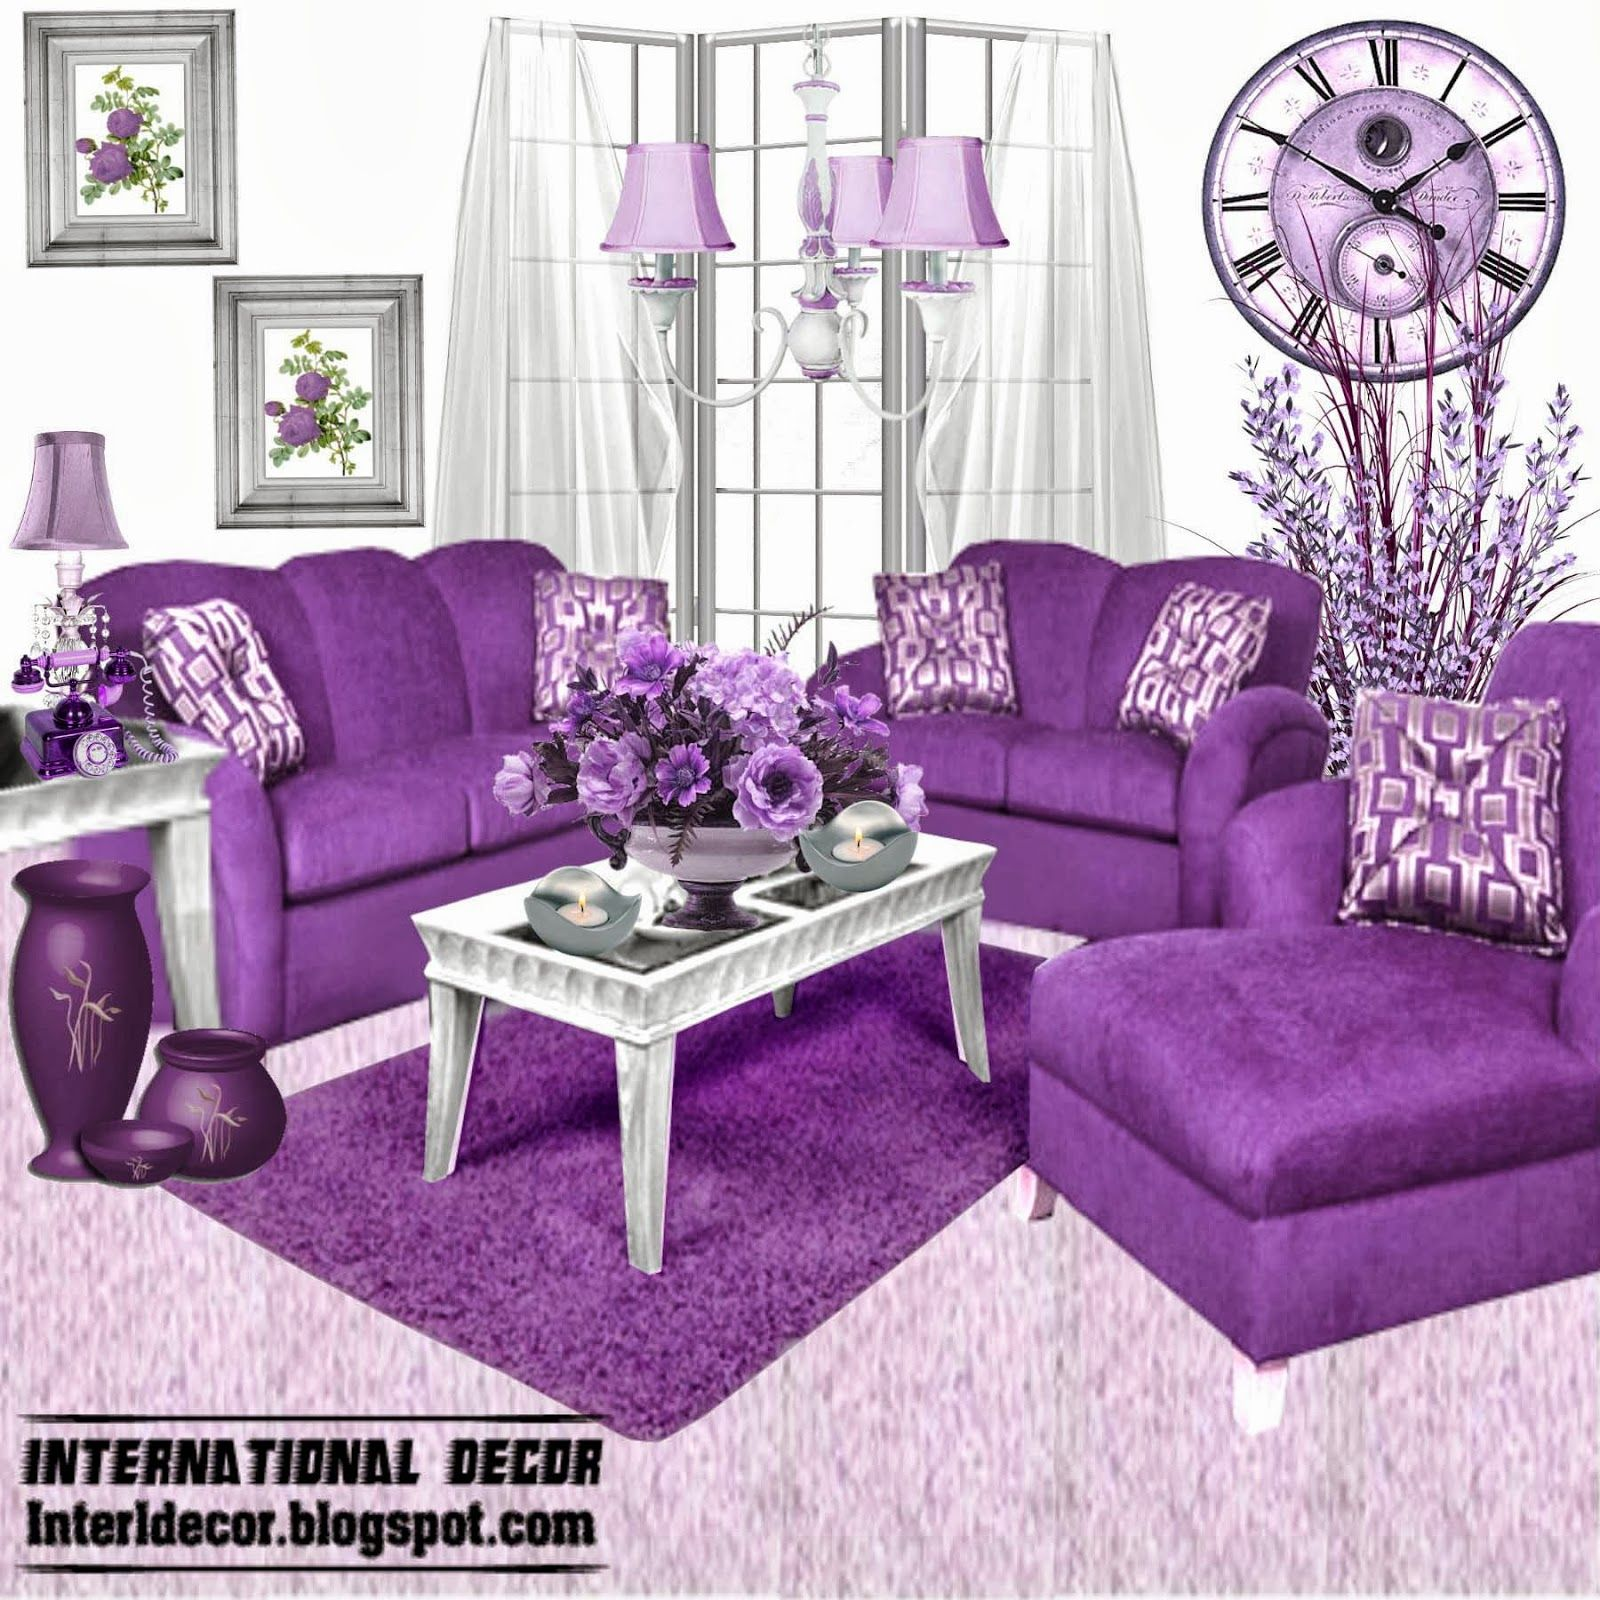 Innovative Purple Furniture For Living Room Inspiration Sofas Sets Picture Images